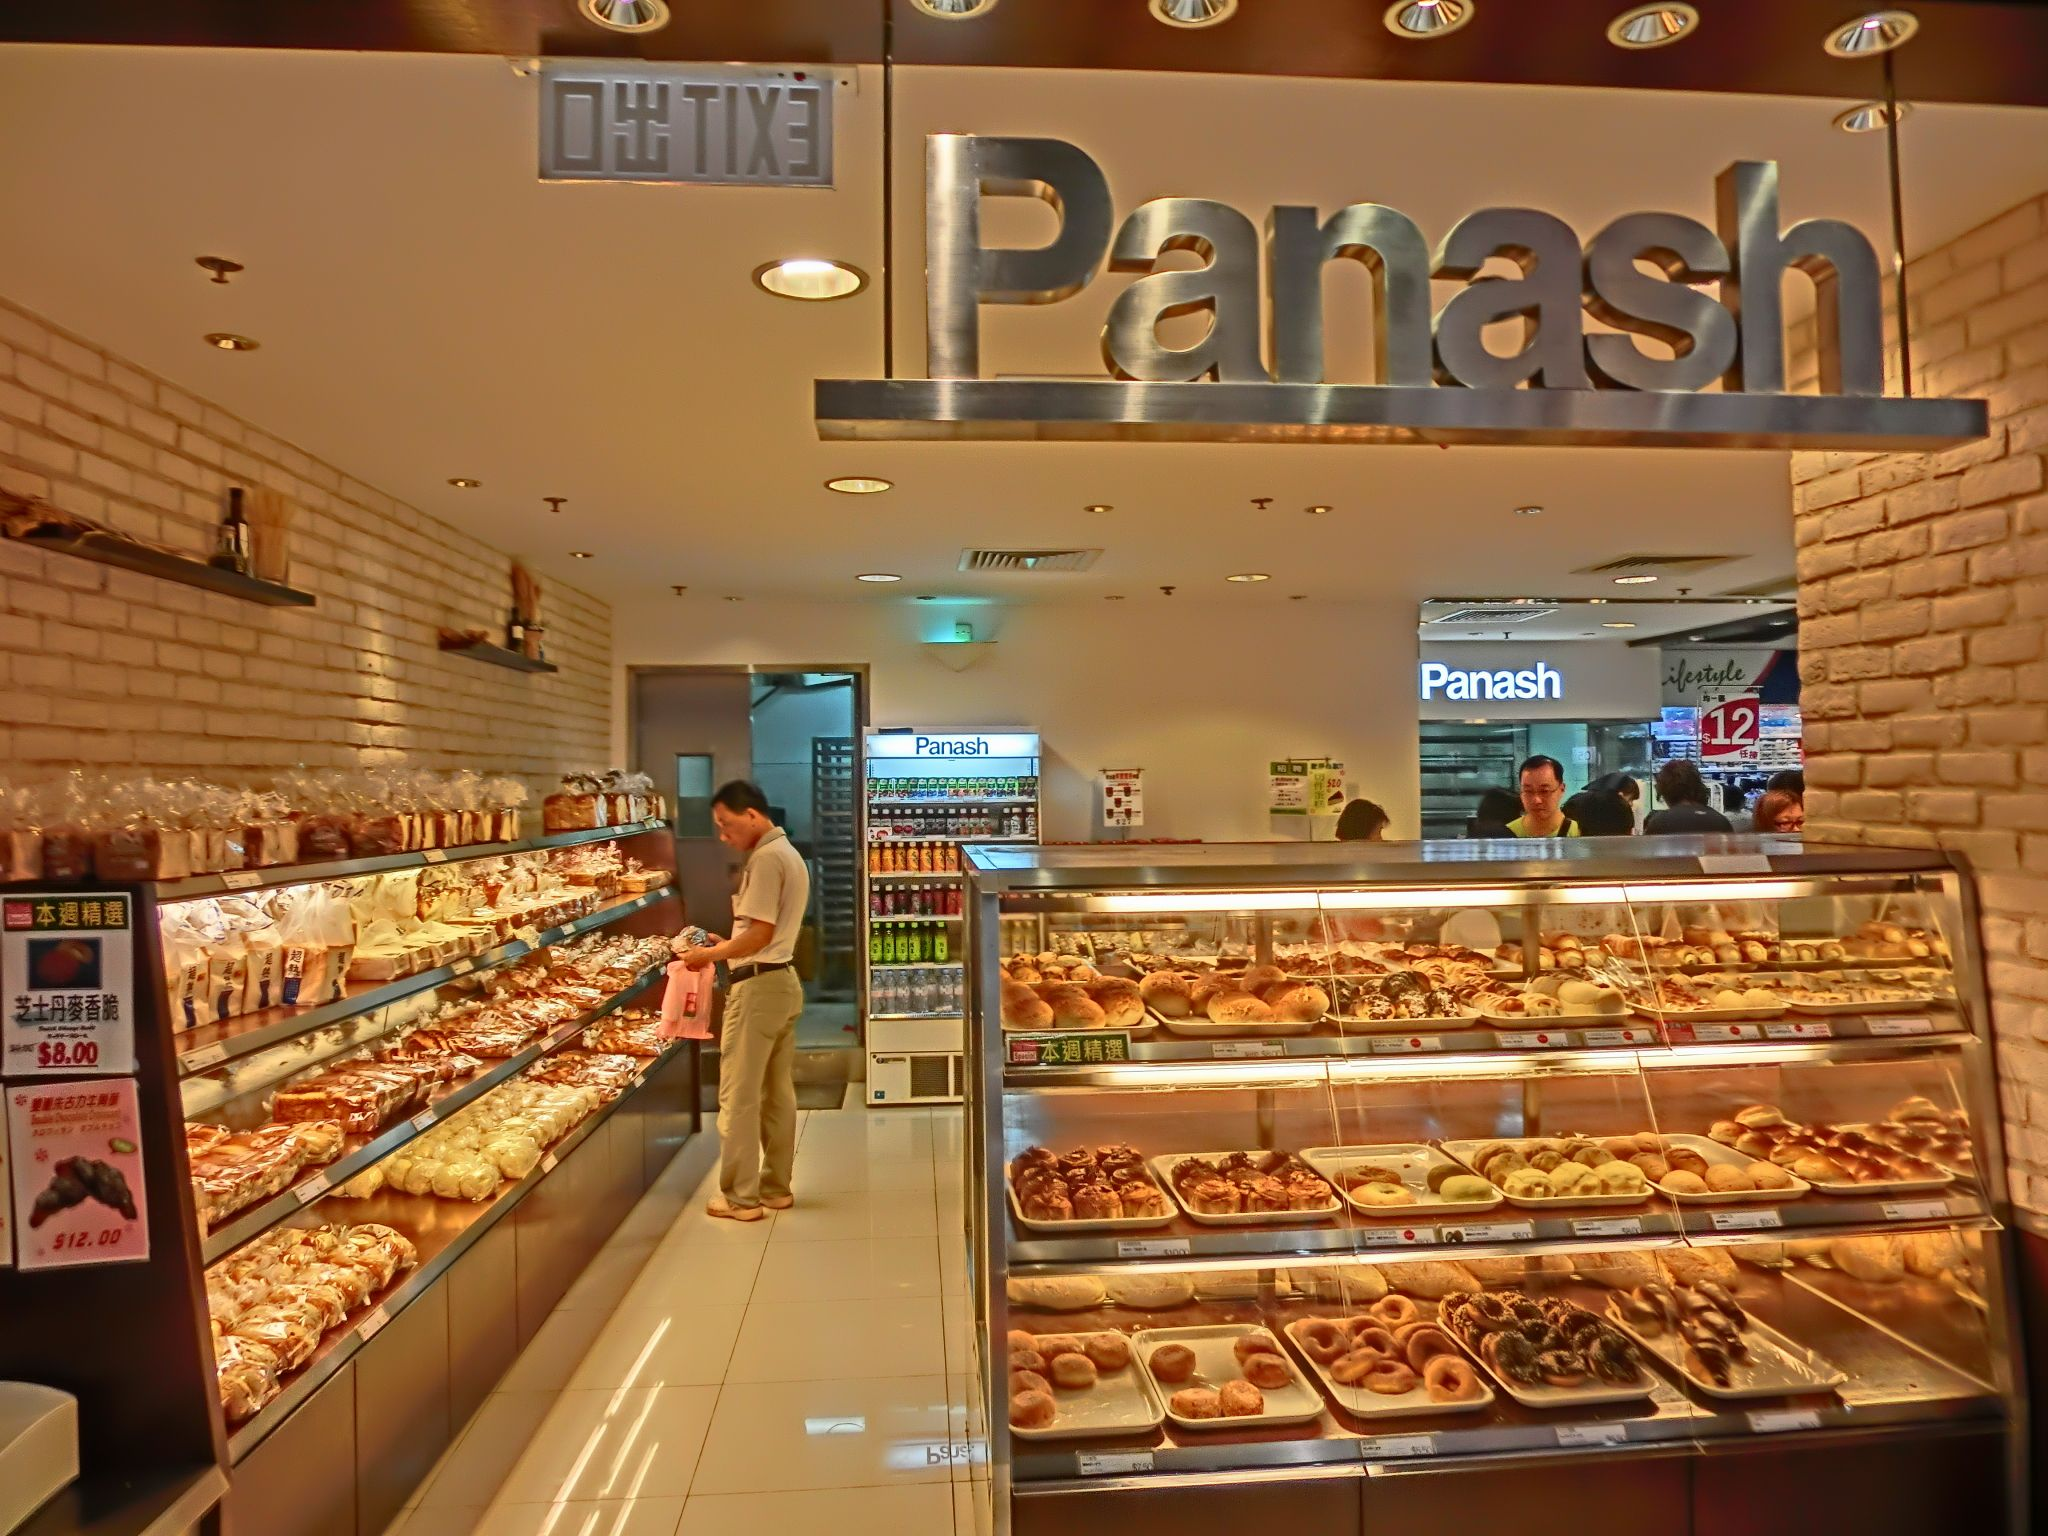 Bakery shop google search bakery pinterest for Bakery shop decoration ideas